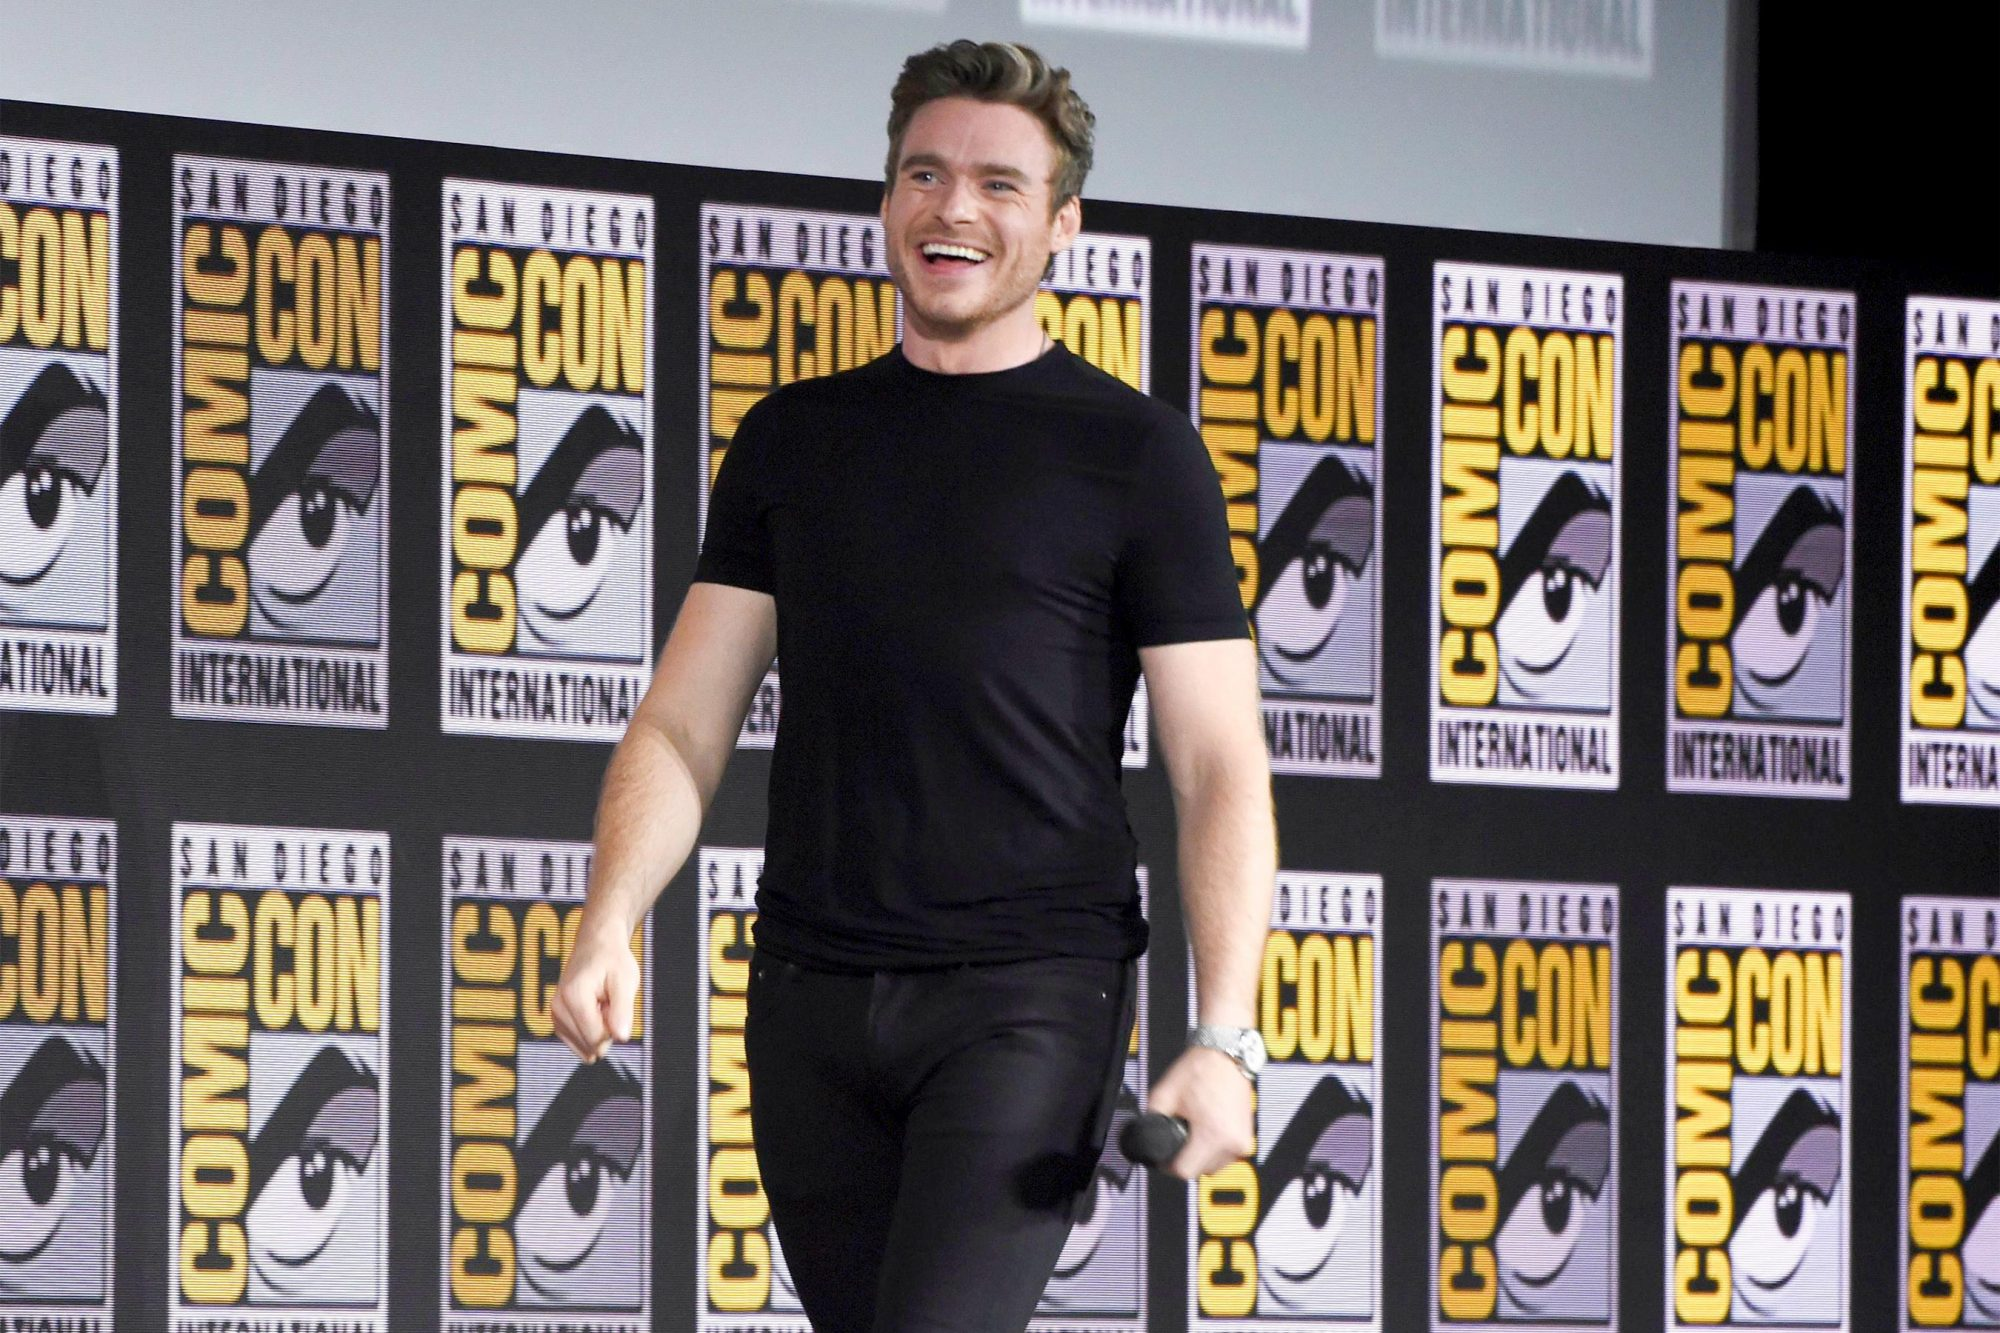 2019 Comic-Con - Marvel Studios, San Diego, USA - 20 Jul 2019